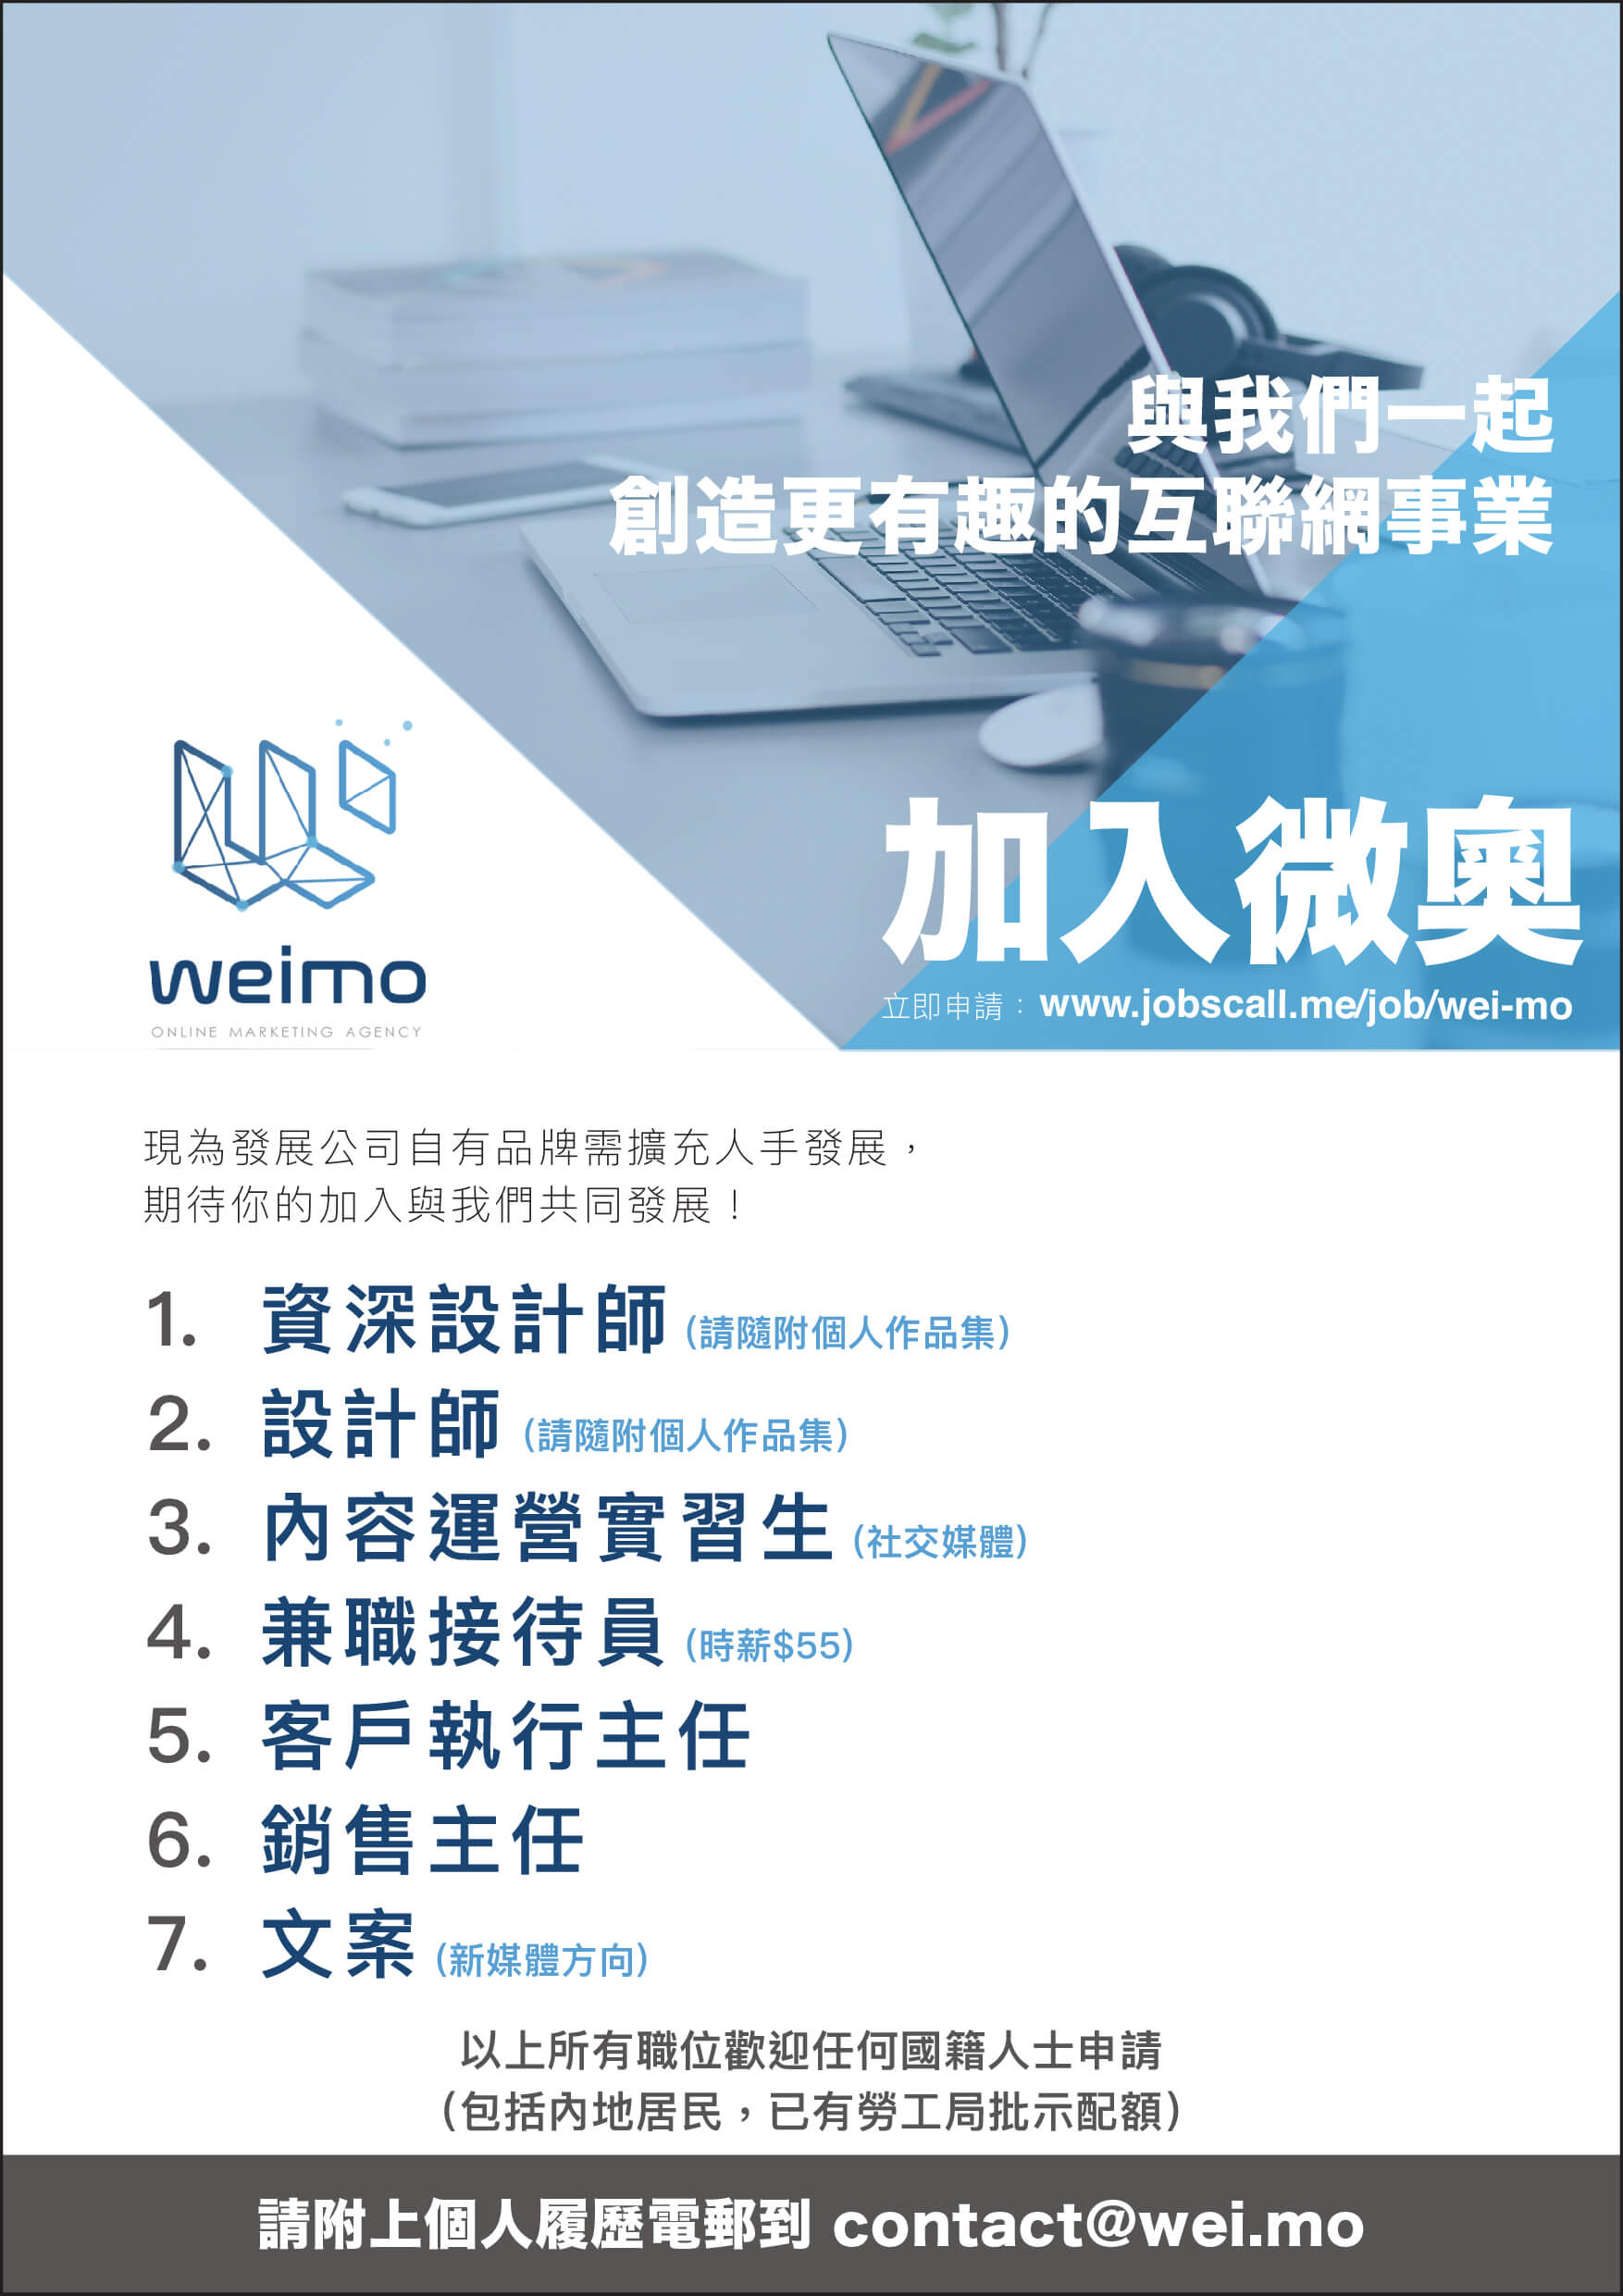 Weimo Poster-01-3.jpg